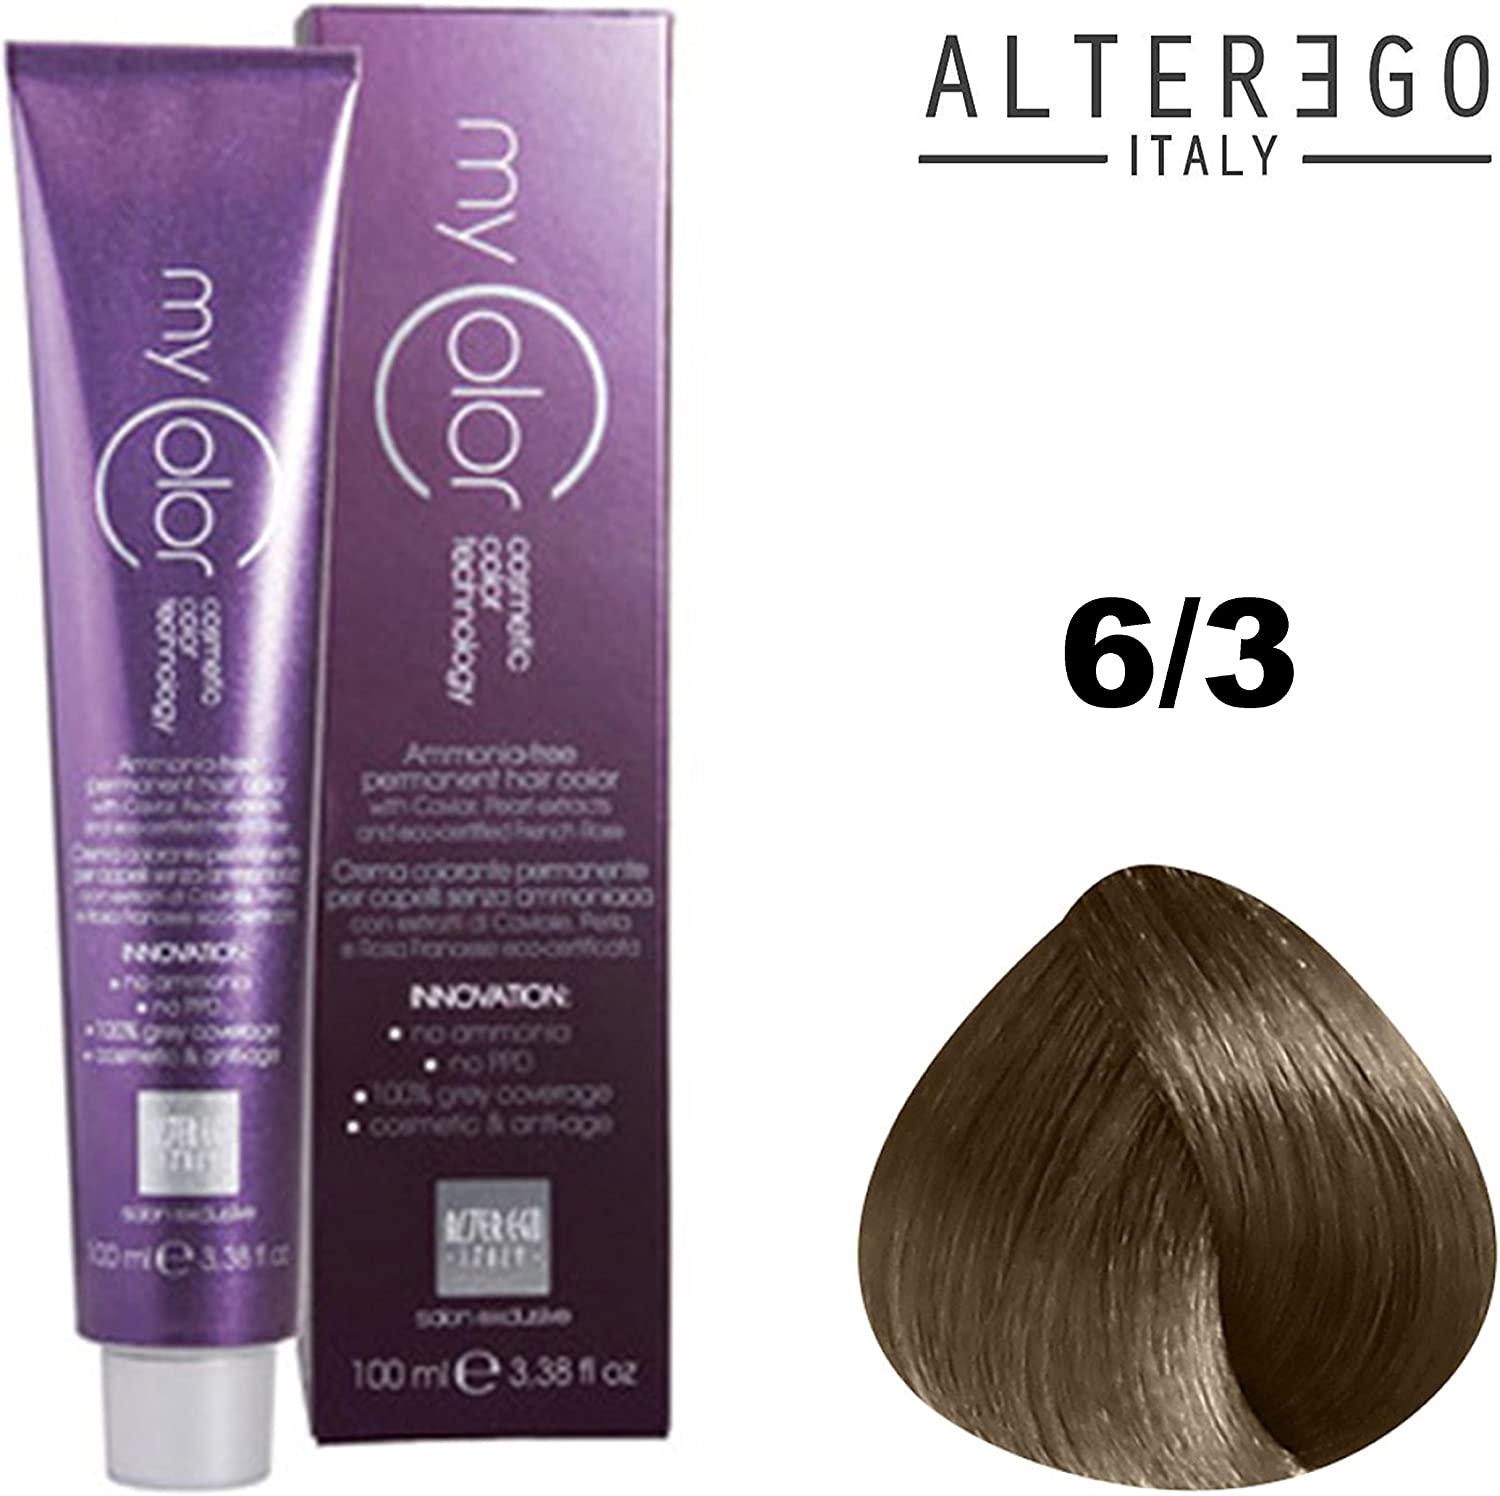 Alterego Ae My Color 100 ml 6/3